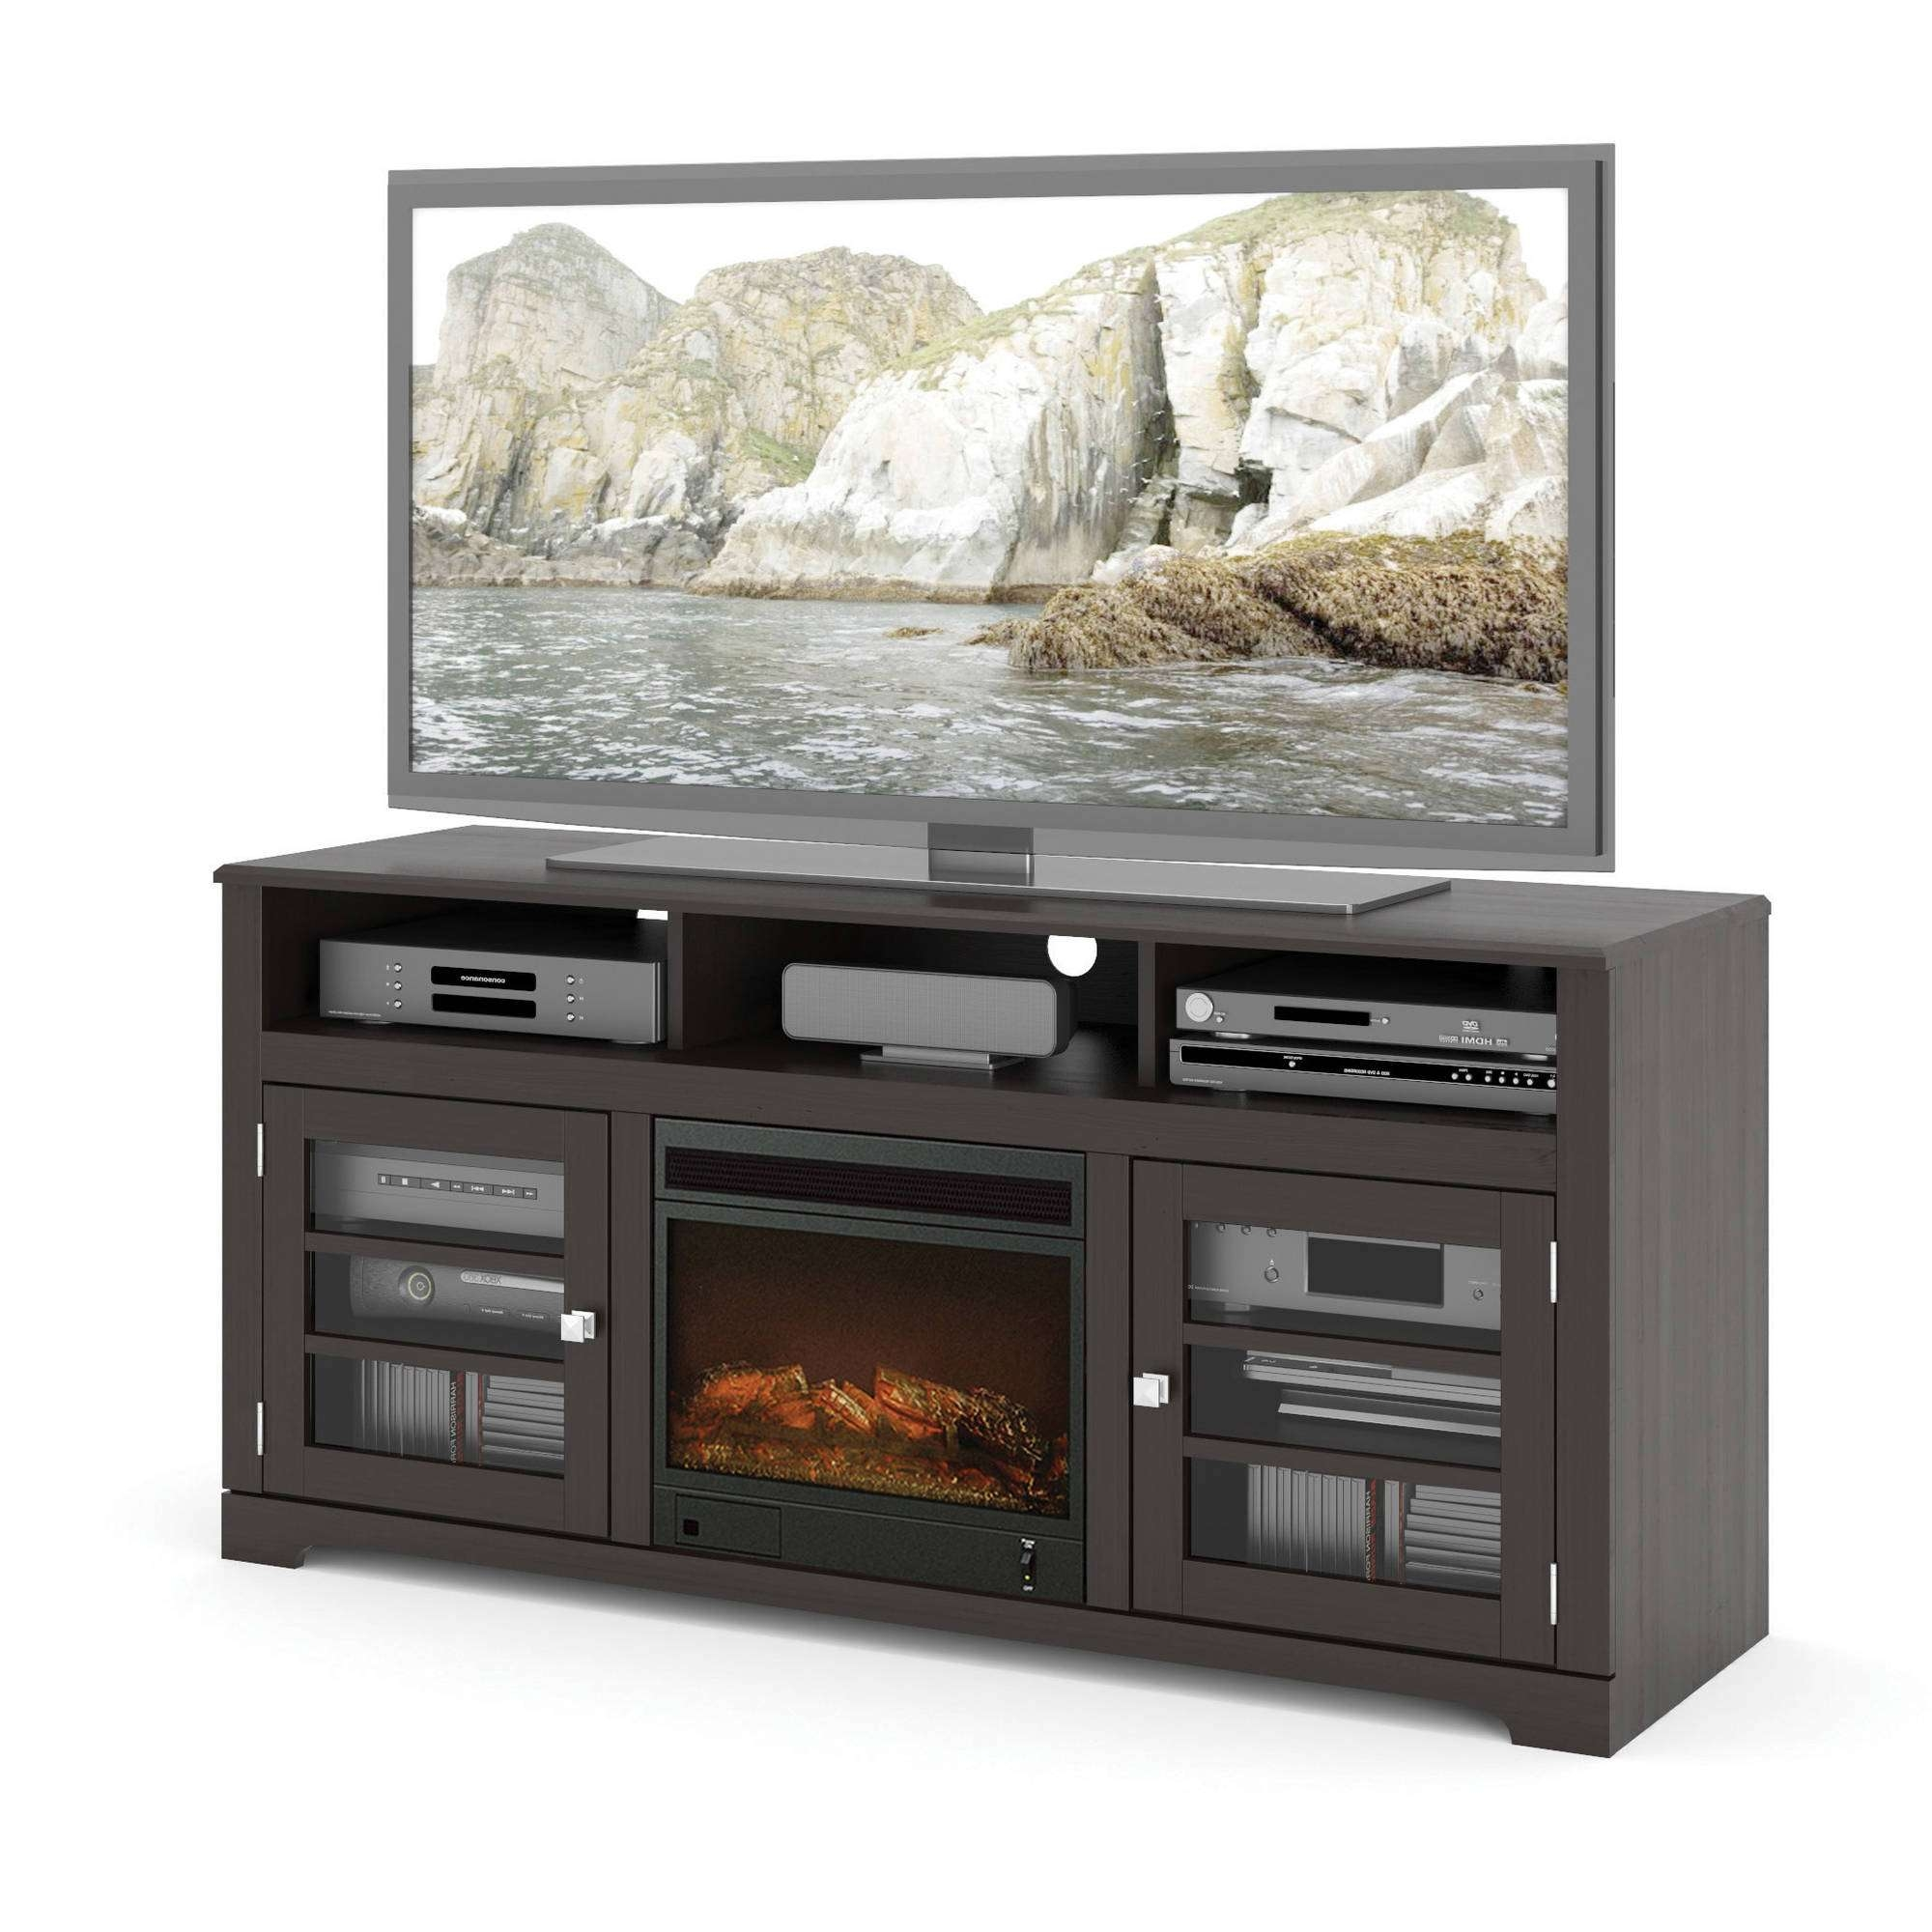 Tv : Wonderful Tv Stands For 70 Inch Tvs For Tv S Over Astonishing Throughout Tv Stands For 70 Inch Tvs (View 4 of 20)